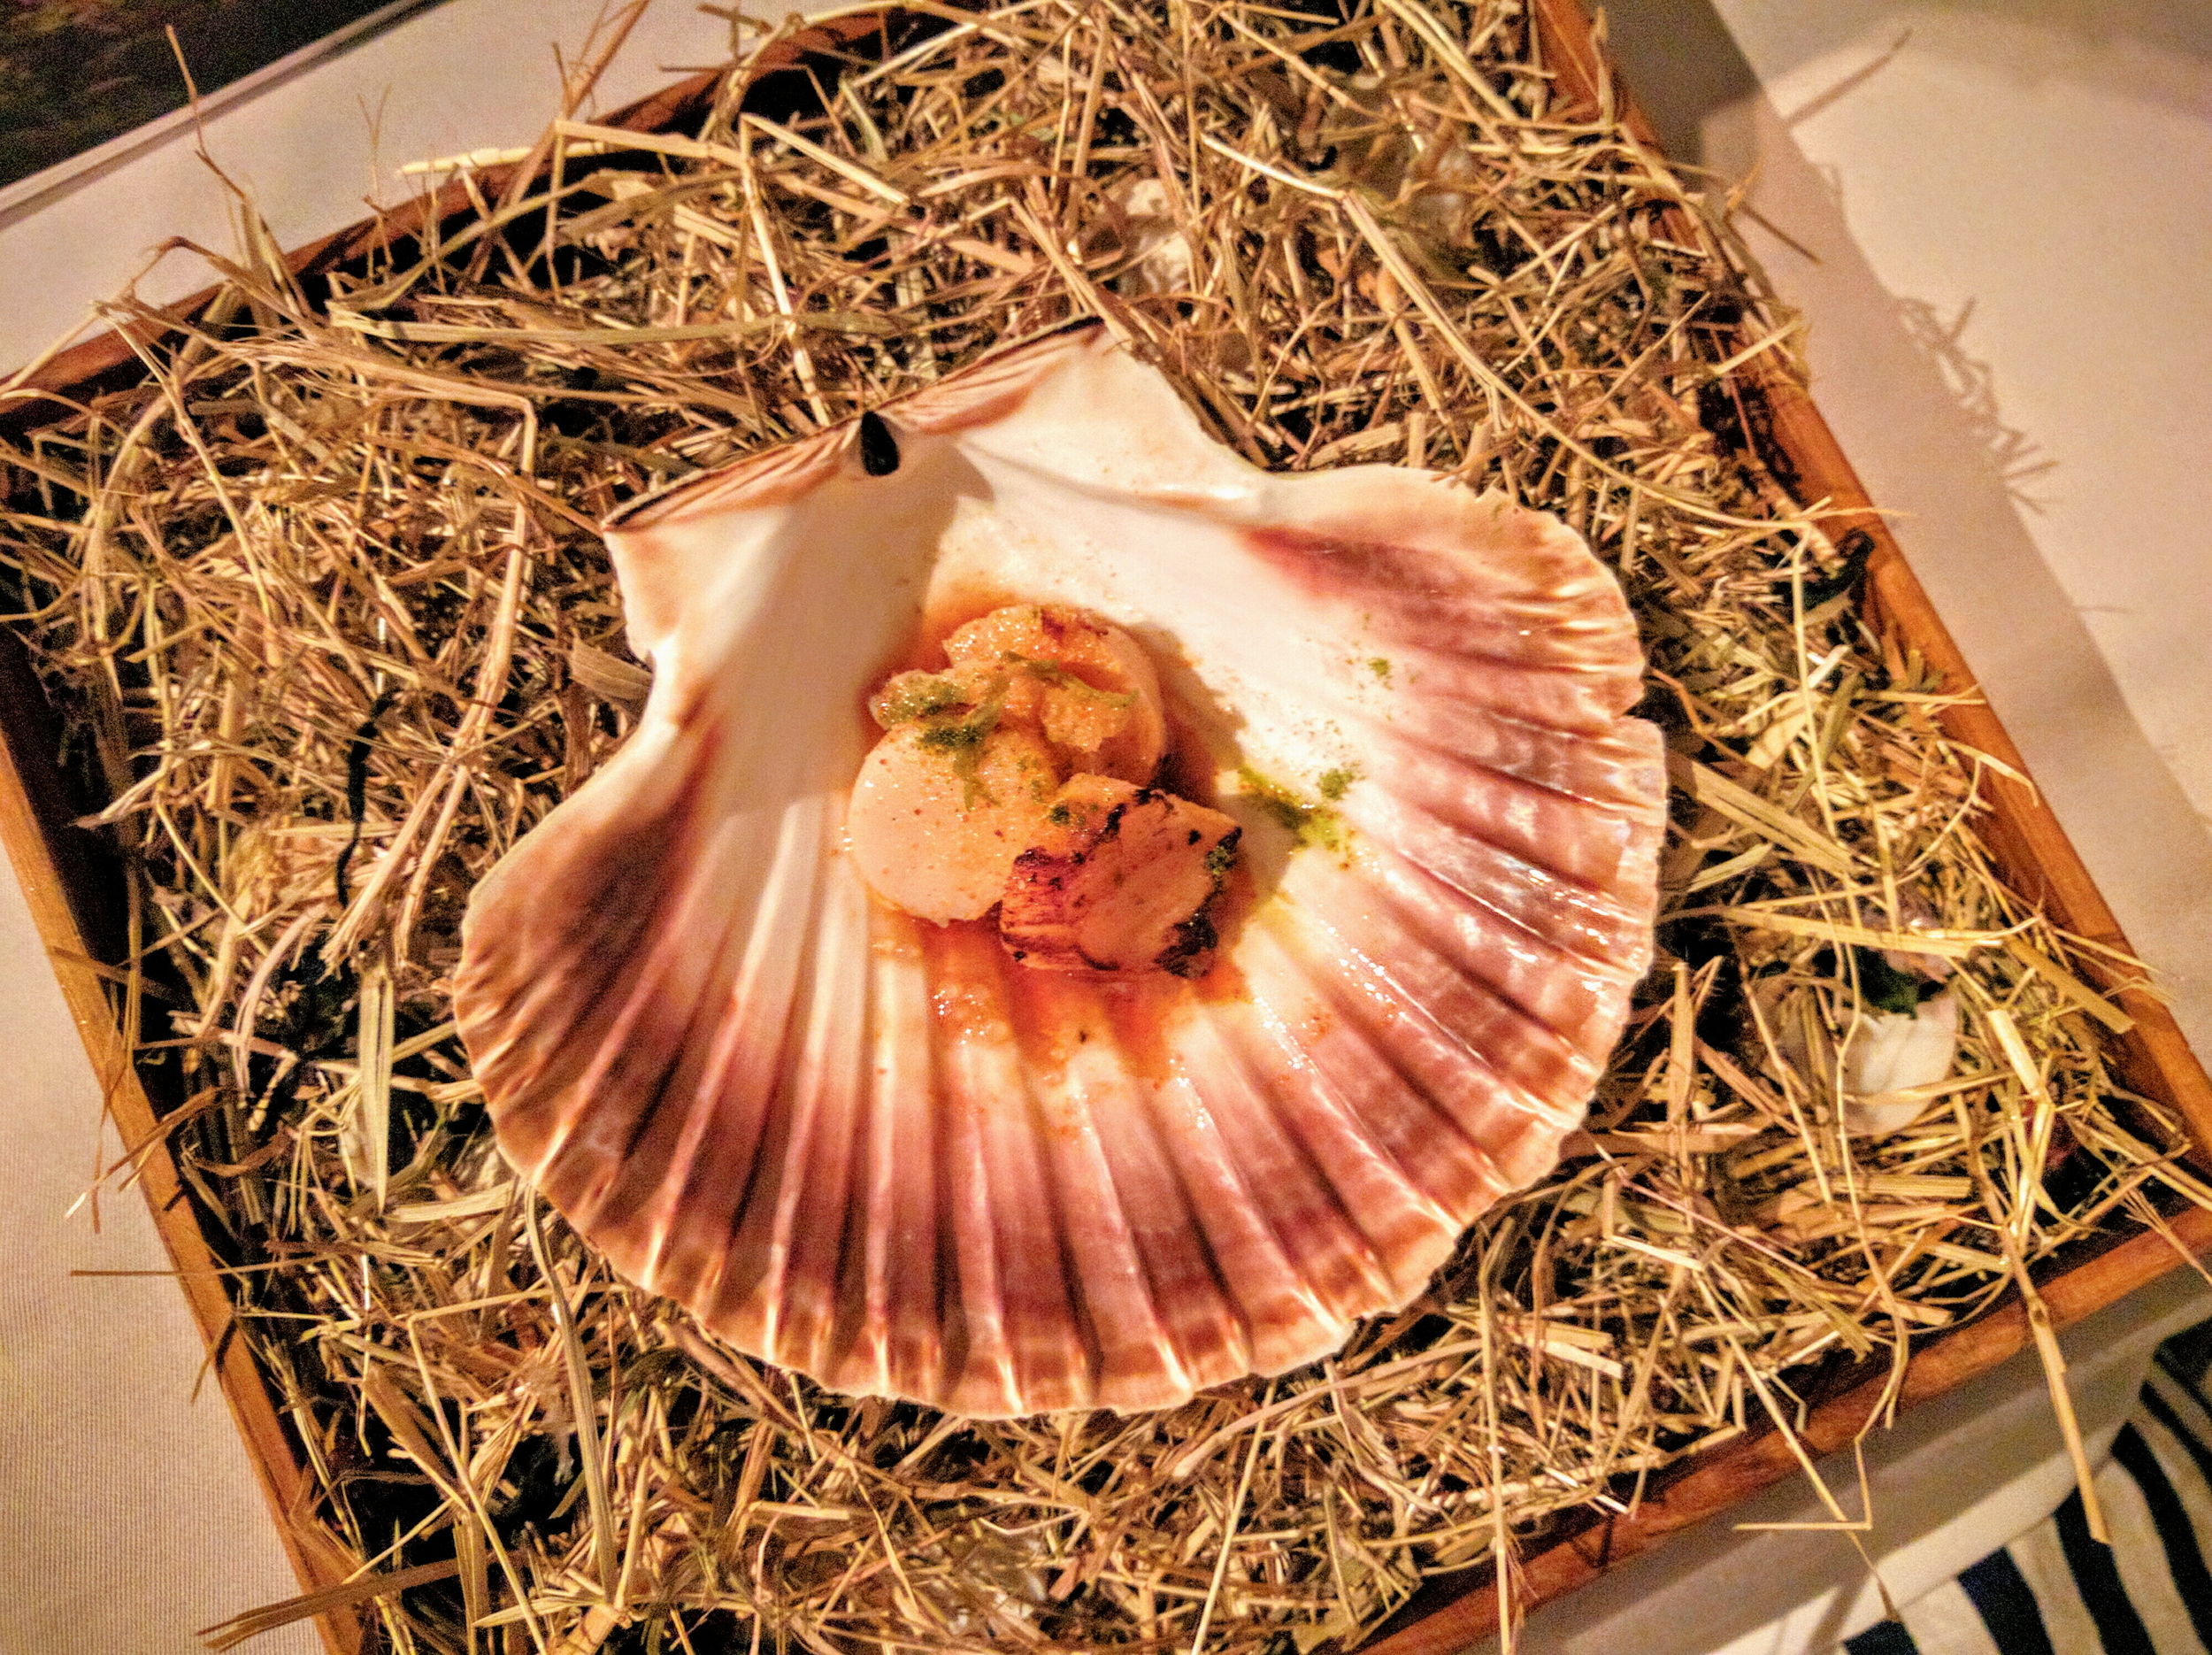 Scallop in it's own shell served with dried roe, fir-tree, finger lime and dashi